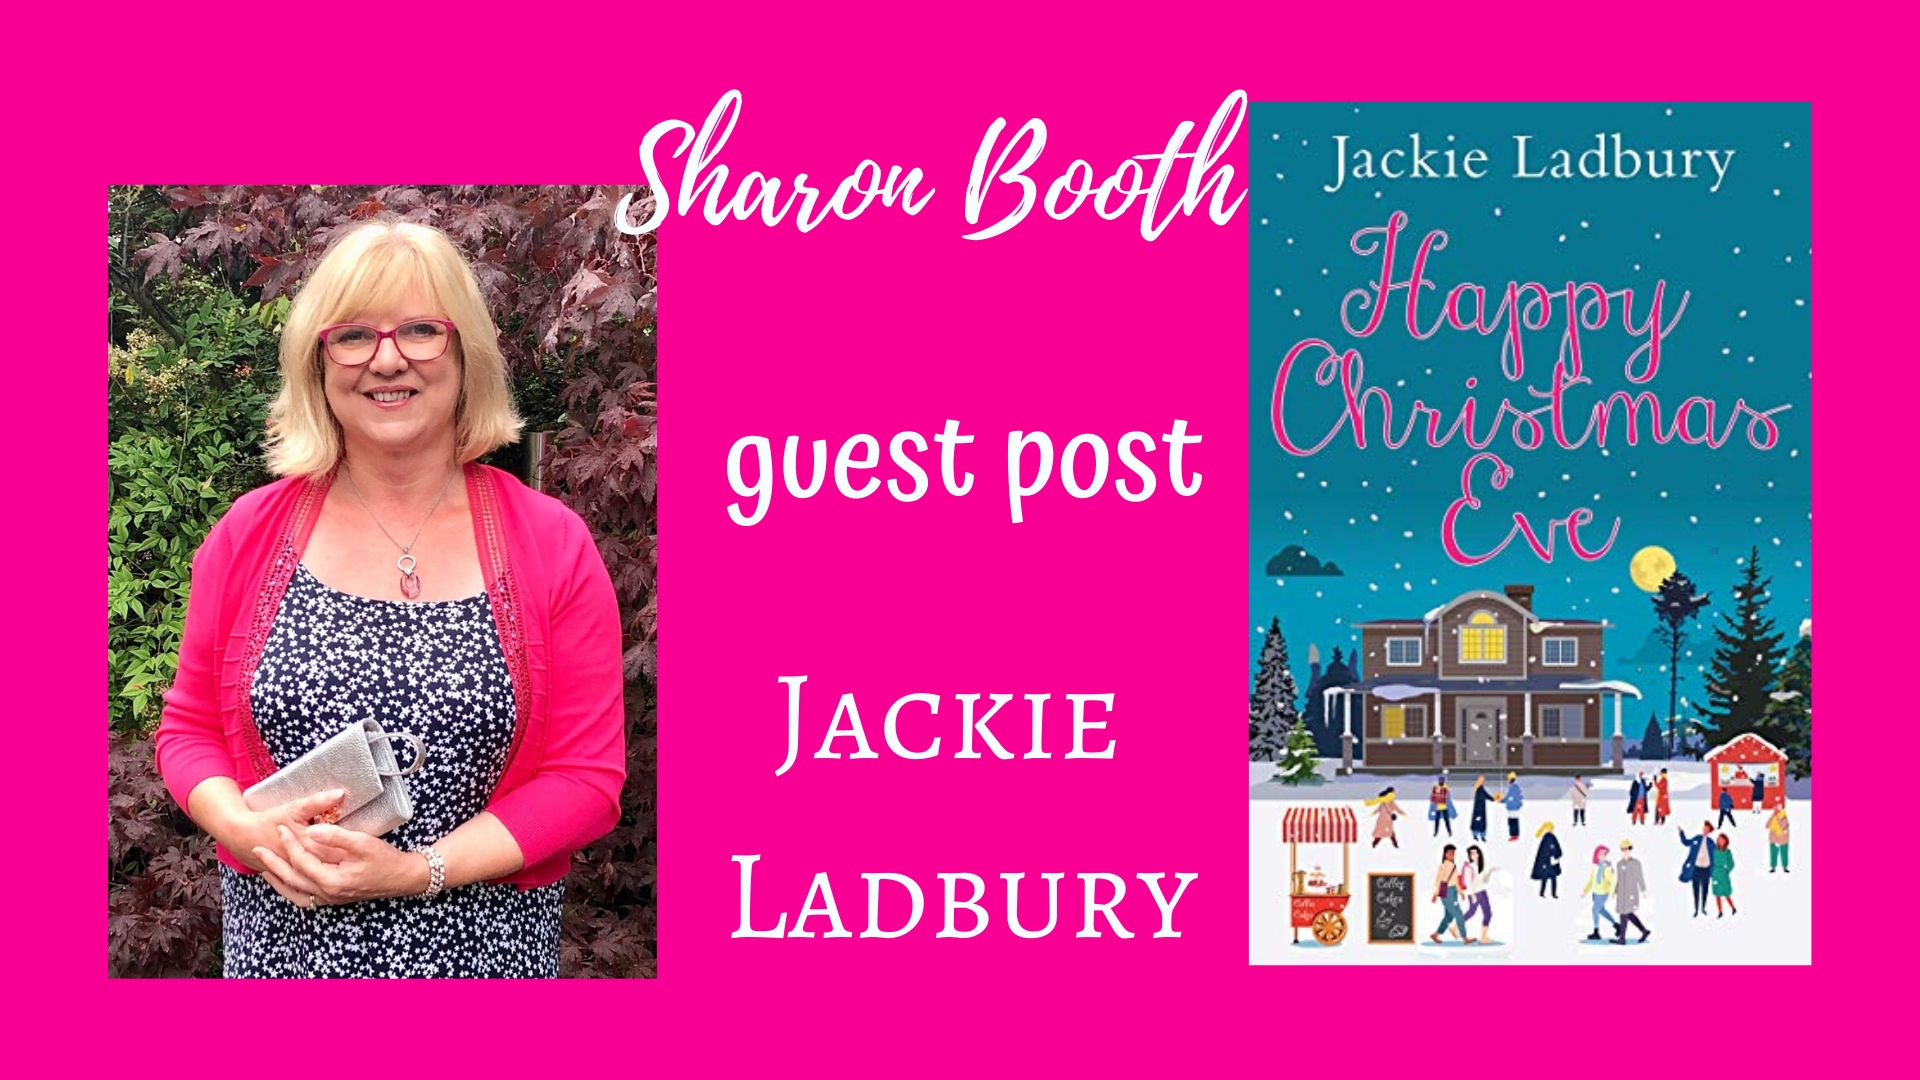 Jackie Ladbury on why she loves Christmas, and the joys of writing Christmas novels.